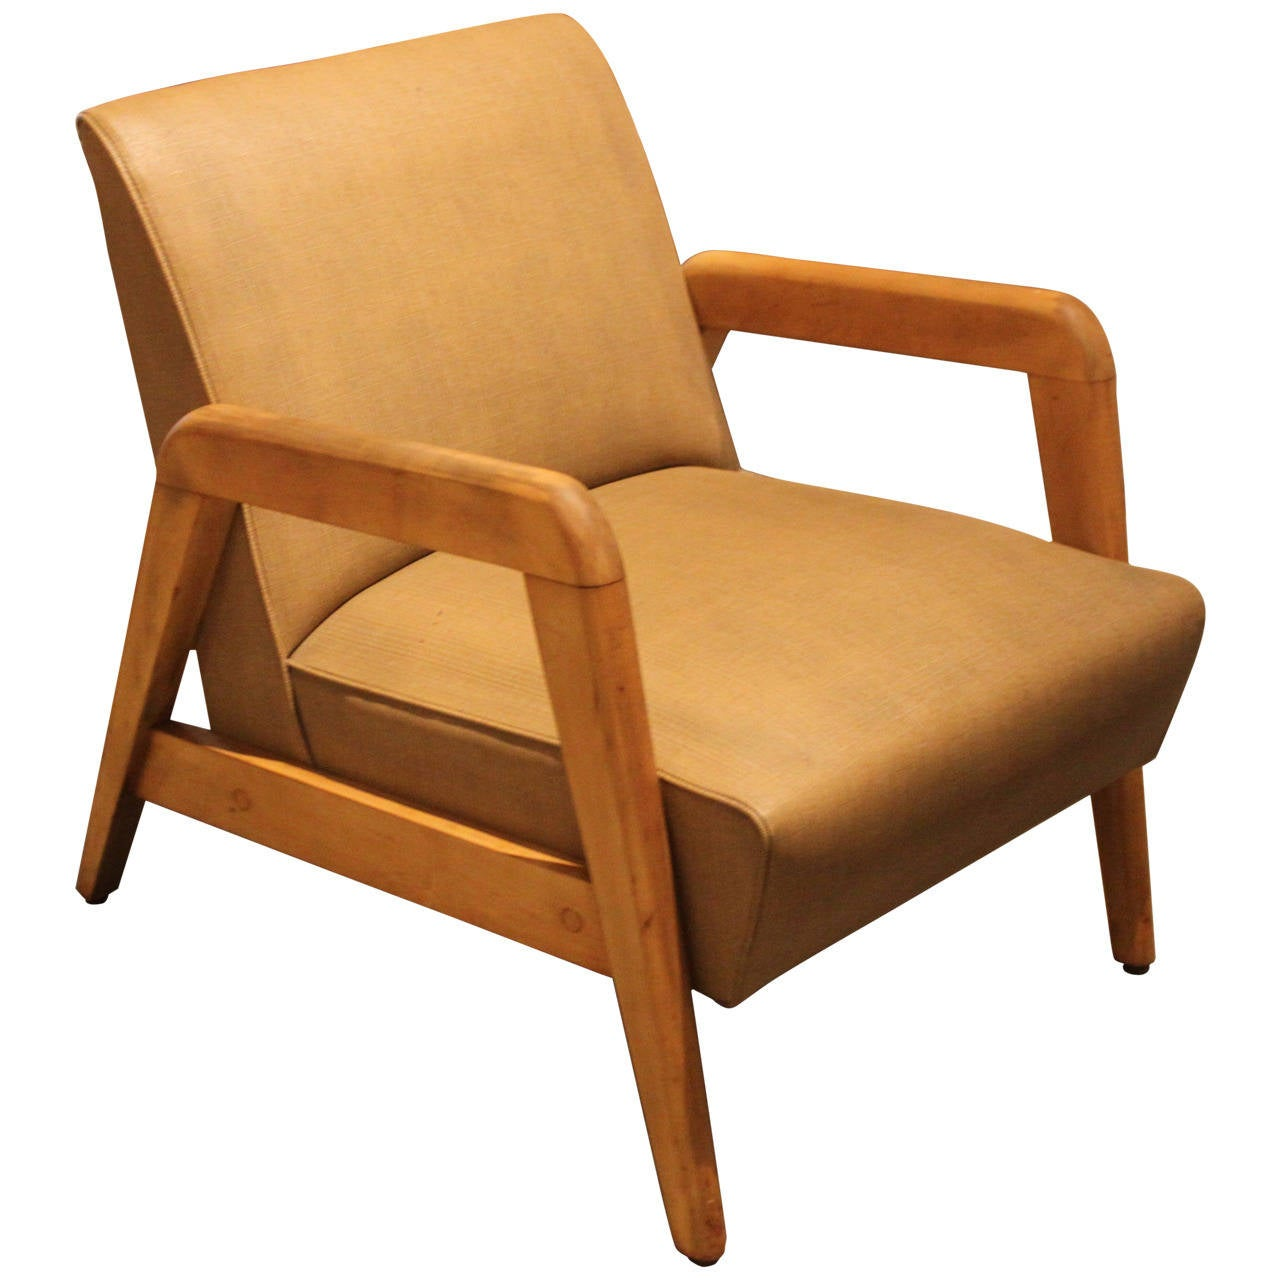 Modern Club Chairs Mid Century Modern Lounge Chair At 1stdibs